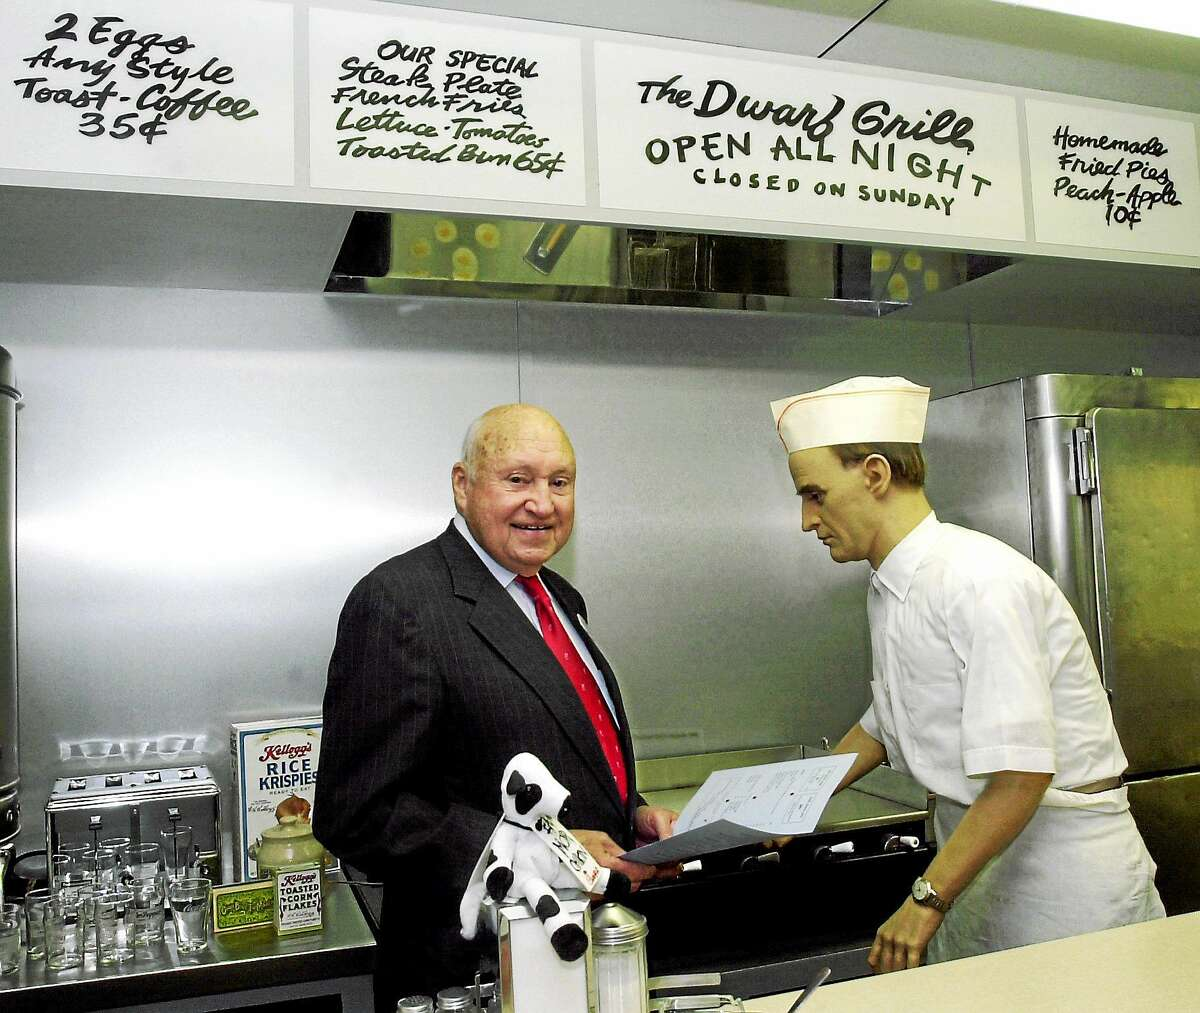 """In this November 2001 file photo, S. Truett Cathy, founder of Chick-fil-A, poses in a replica of """"The Dwarf Grill,"""" the original restaurant he started in Atlanta in 1946. A spokesman said Cathy, who started the postwar diner in Atlanta that grew into the Chick-fil-A restaurant chain, died early Monday."""